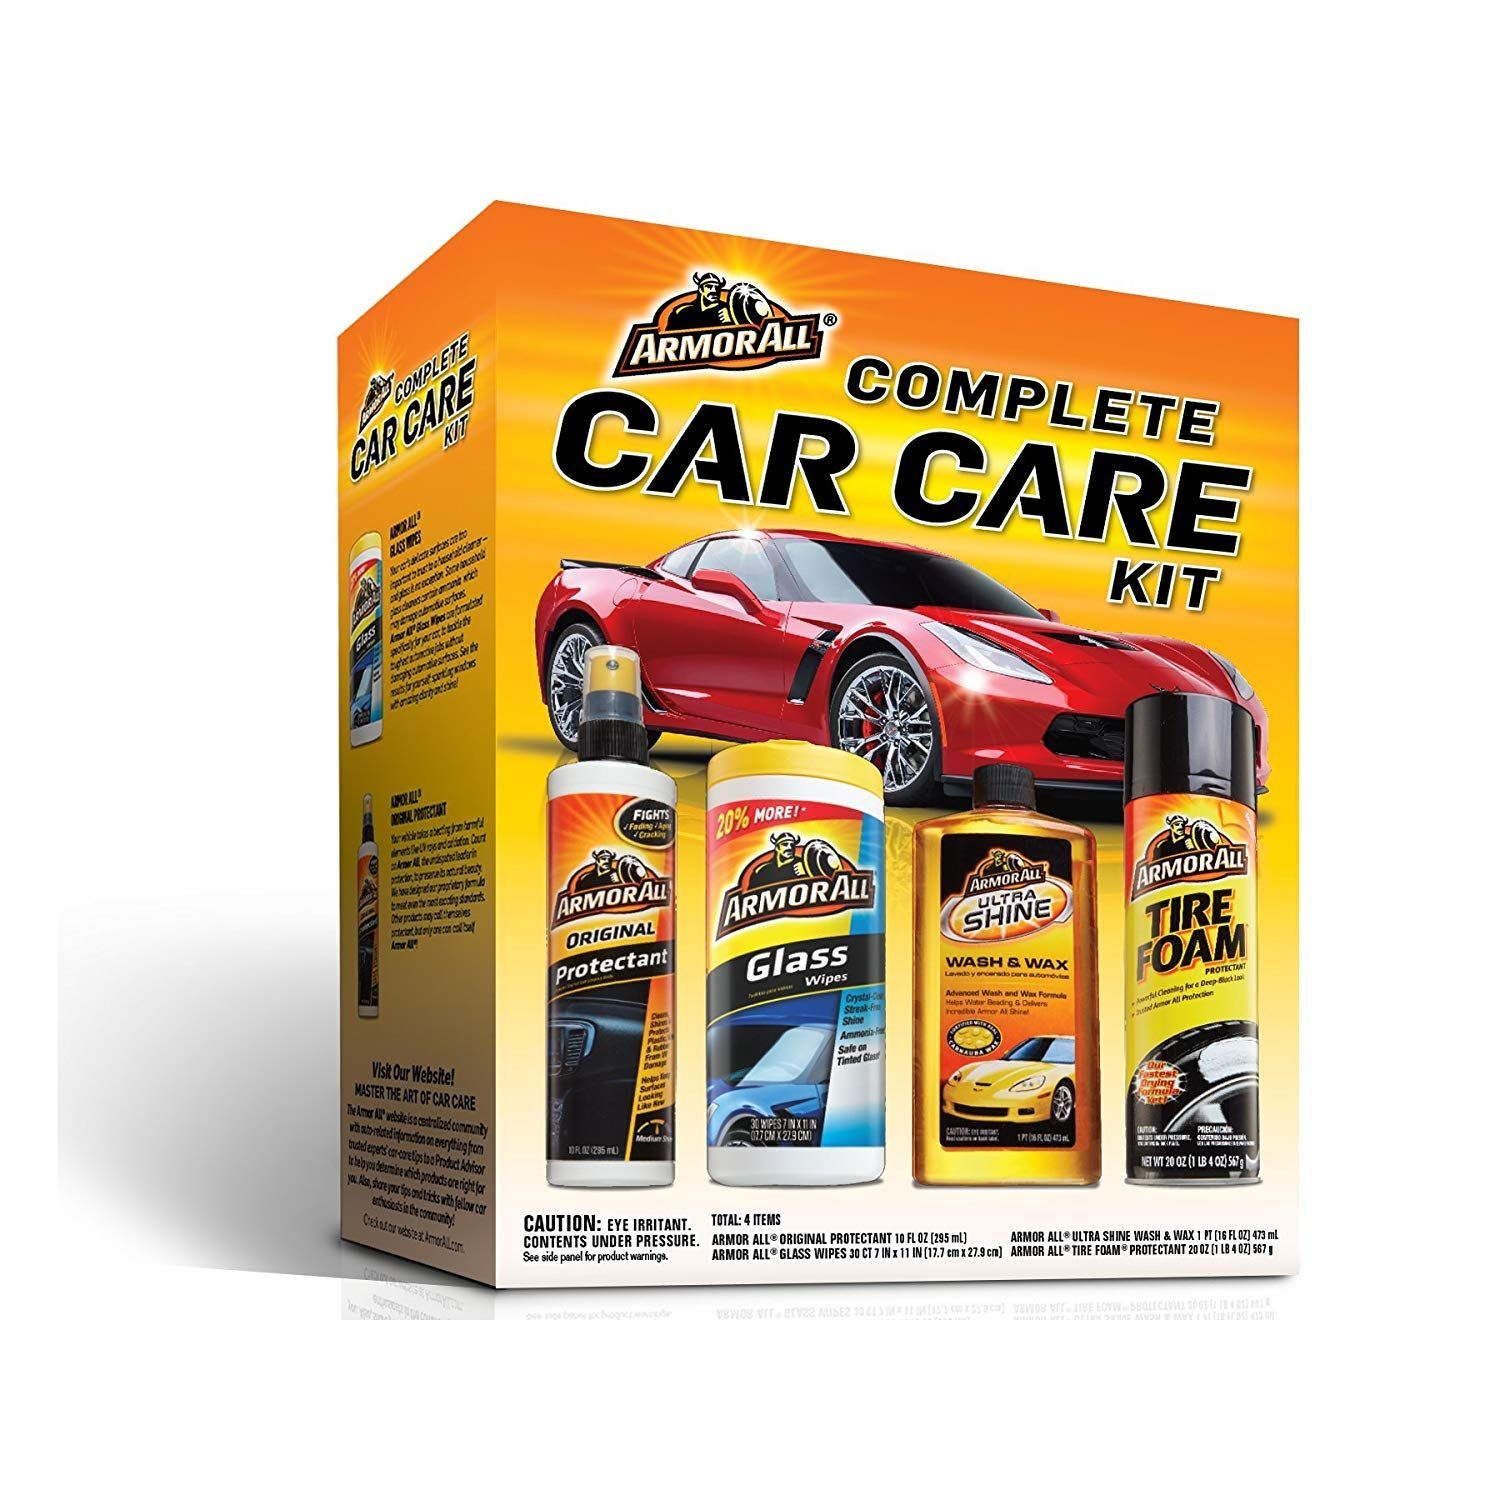 Armor All Complete Car Care Kit Amazon Com Ad 1 Kit 4 Items Included Automotive 10 Fl Oz Original Protectant Fights F Car Cleaning Kit Car Care Kit